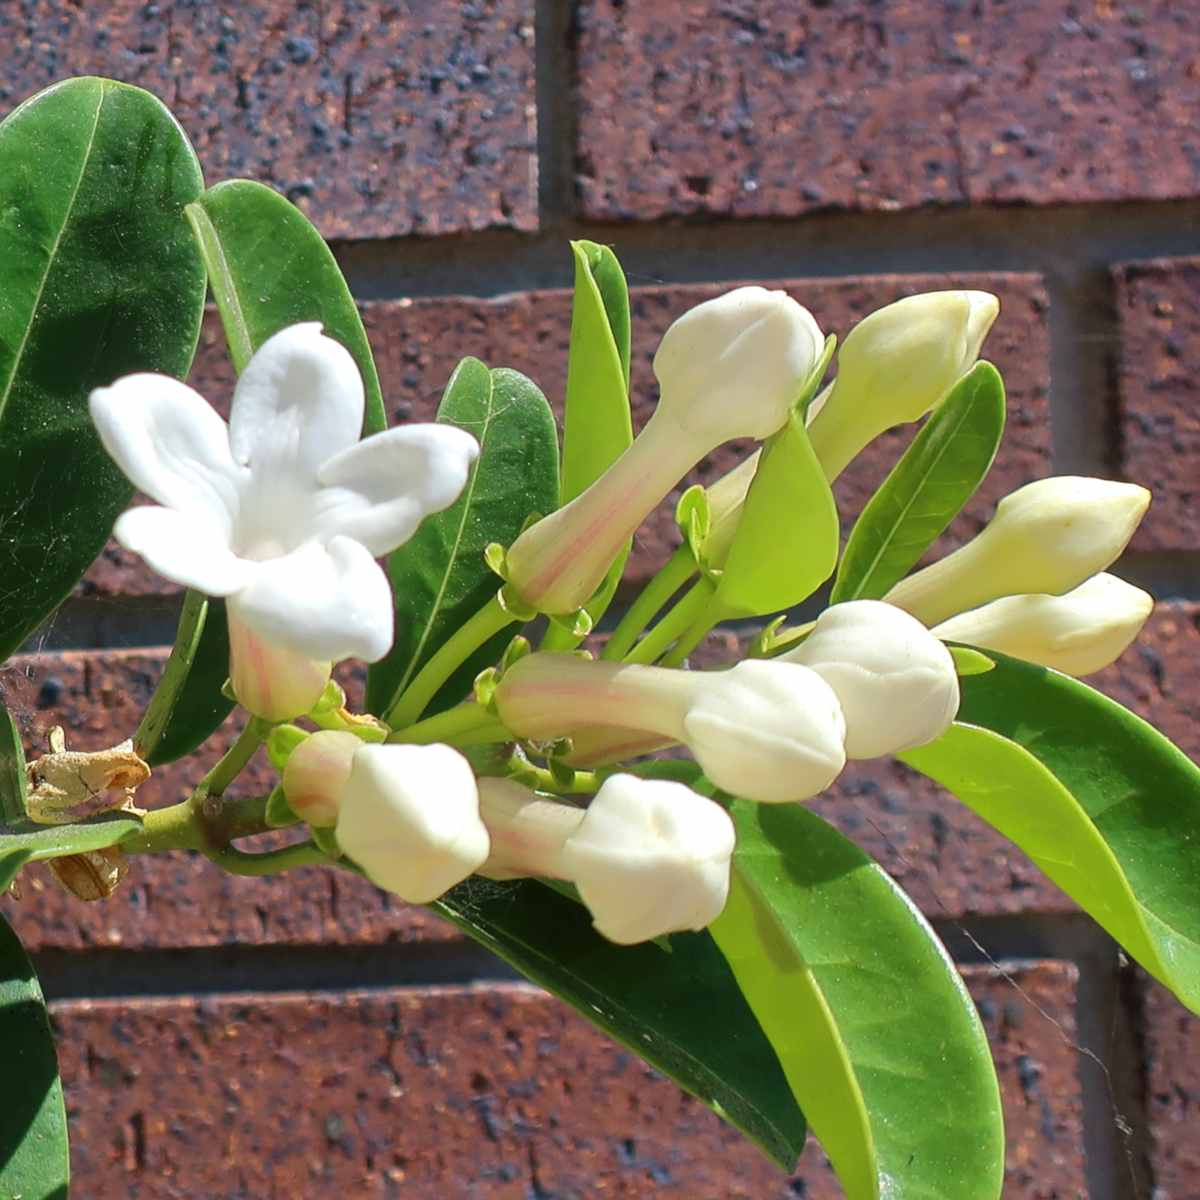 Properly pruned stephanotis blooming before a brick wall.